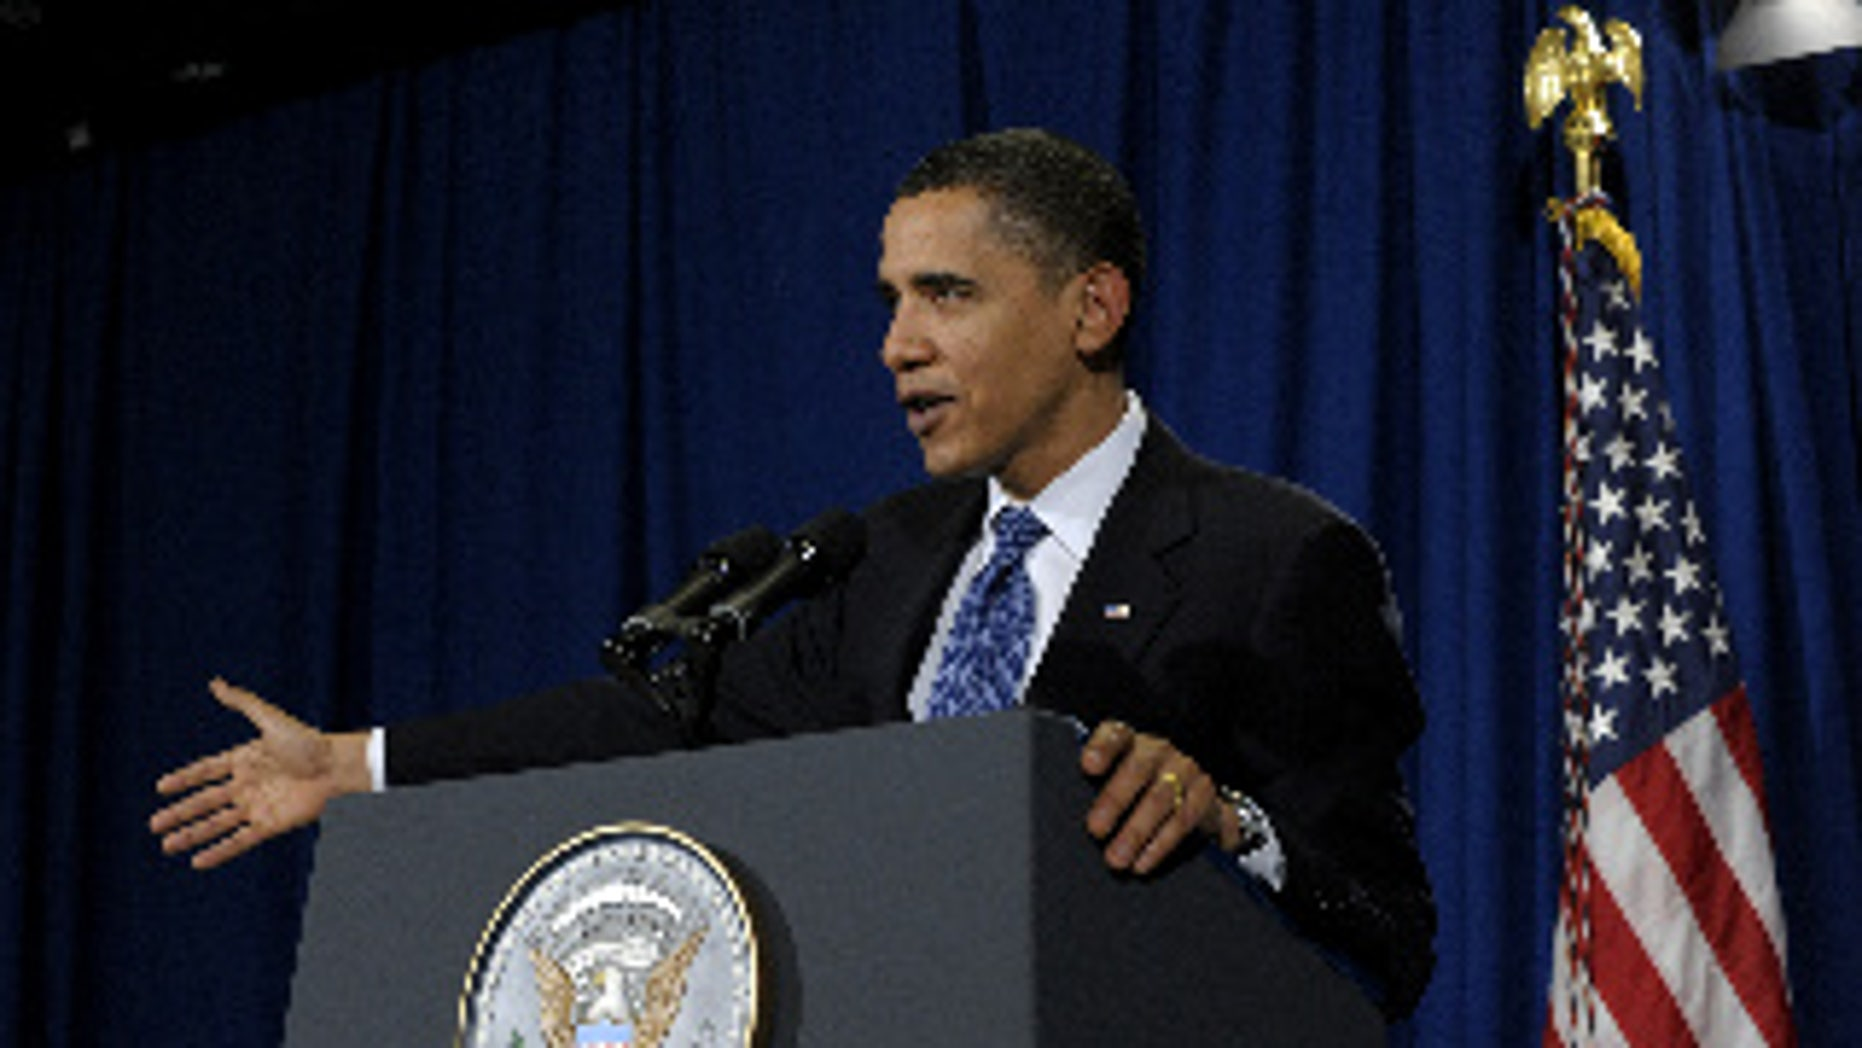 President Obama holds a press conference in Copenhagen (AP Photo)